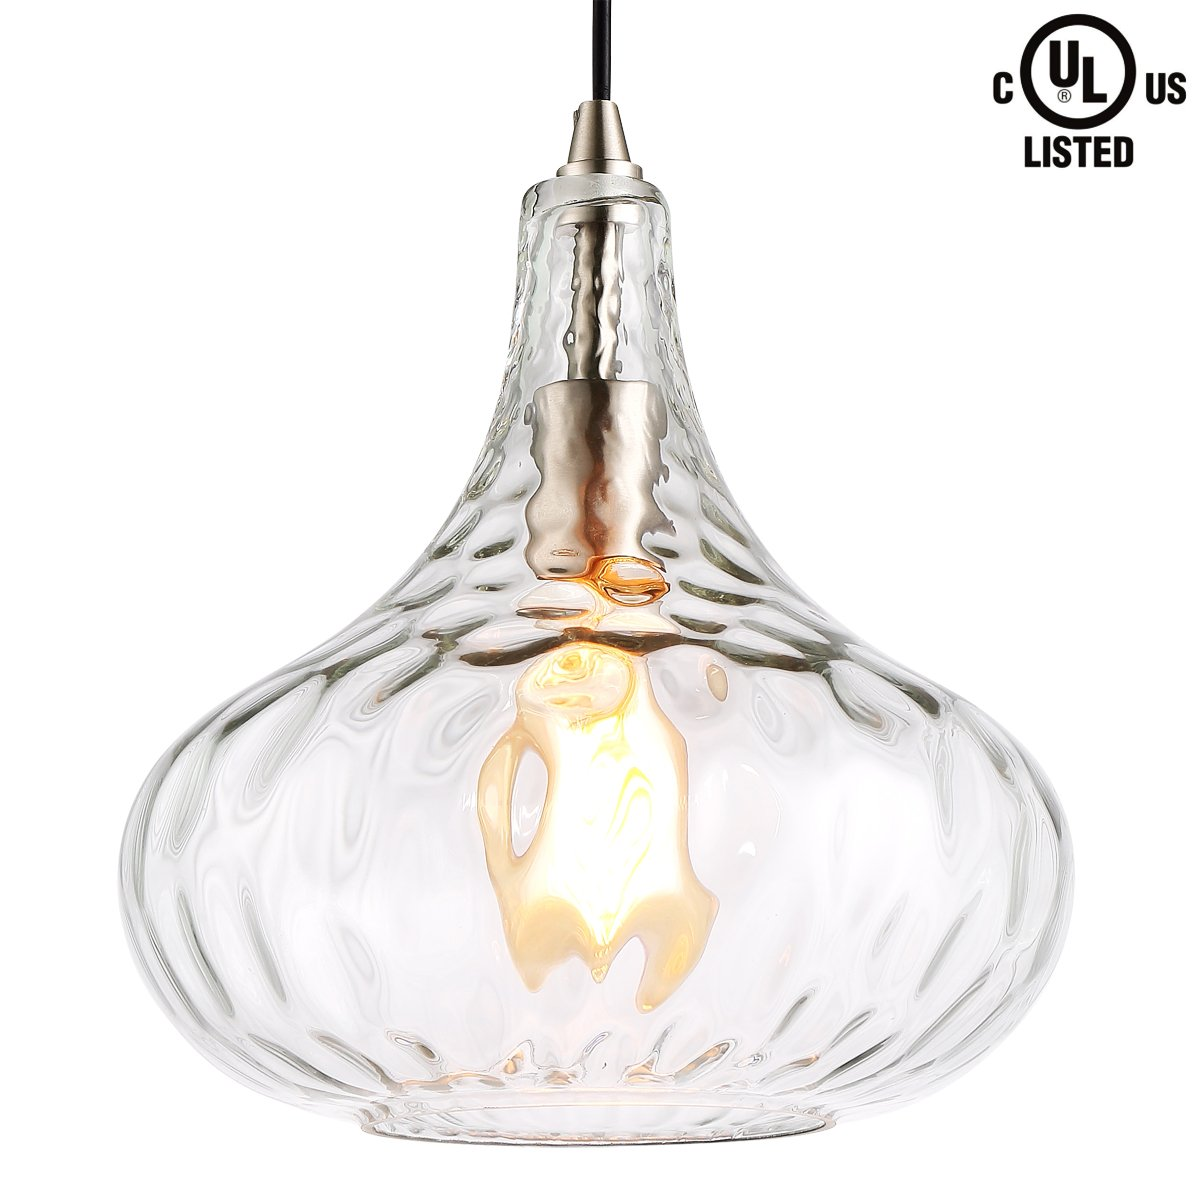 HOMIFORCE Modern Style 1-Light Water Glass Pendant Lighting with Hand Blown Glass Shade in Modern Industrial Edison Style Hanging CL2017039 (Virgo Glass) by HOMIFORCE